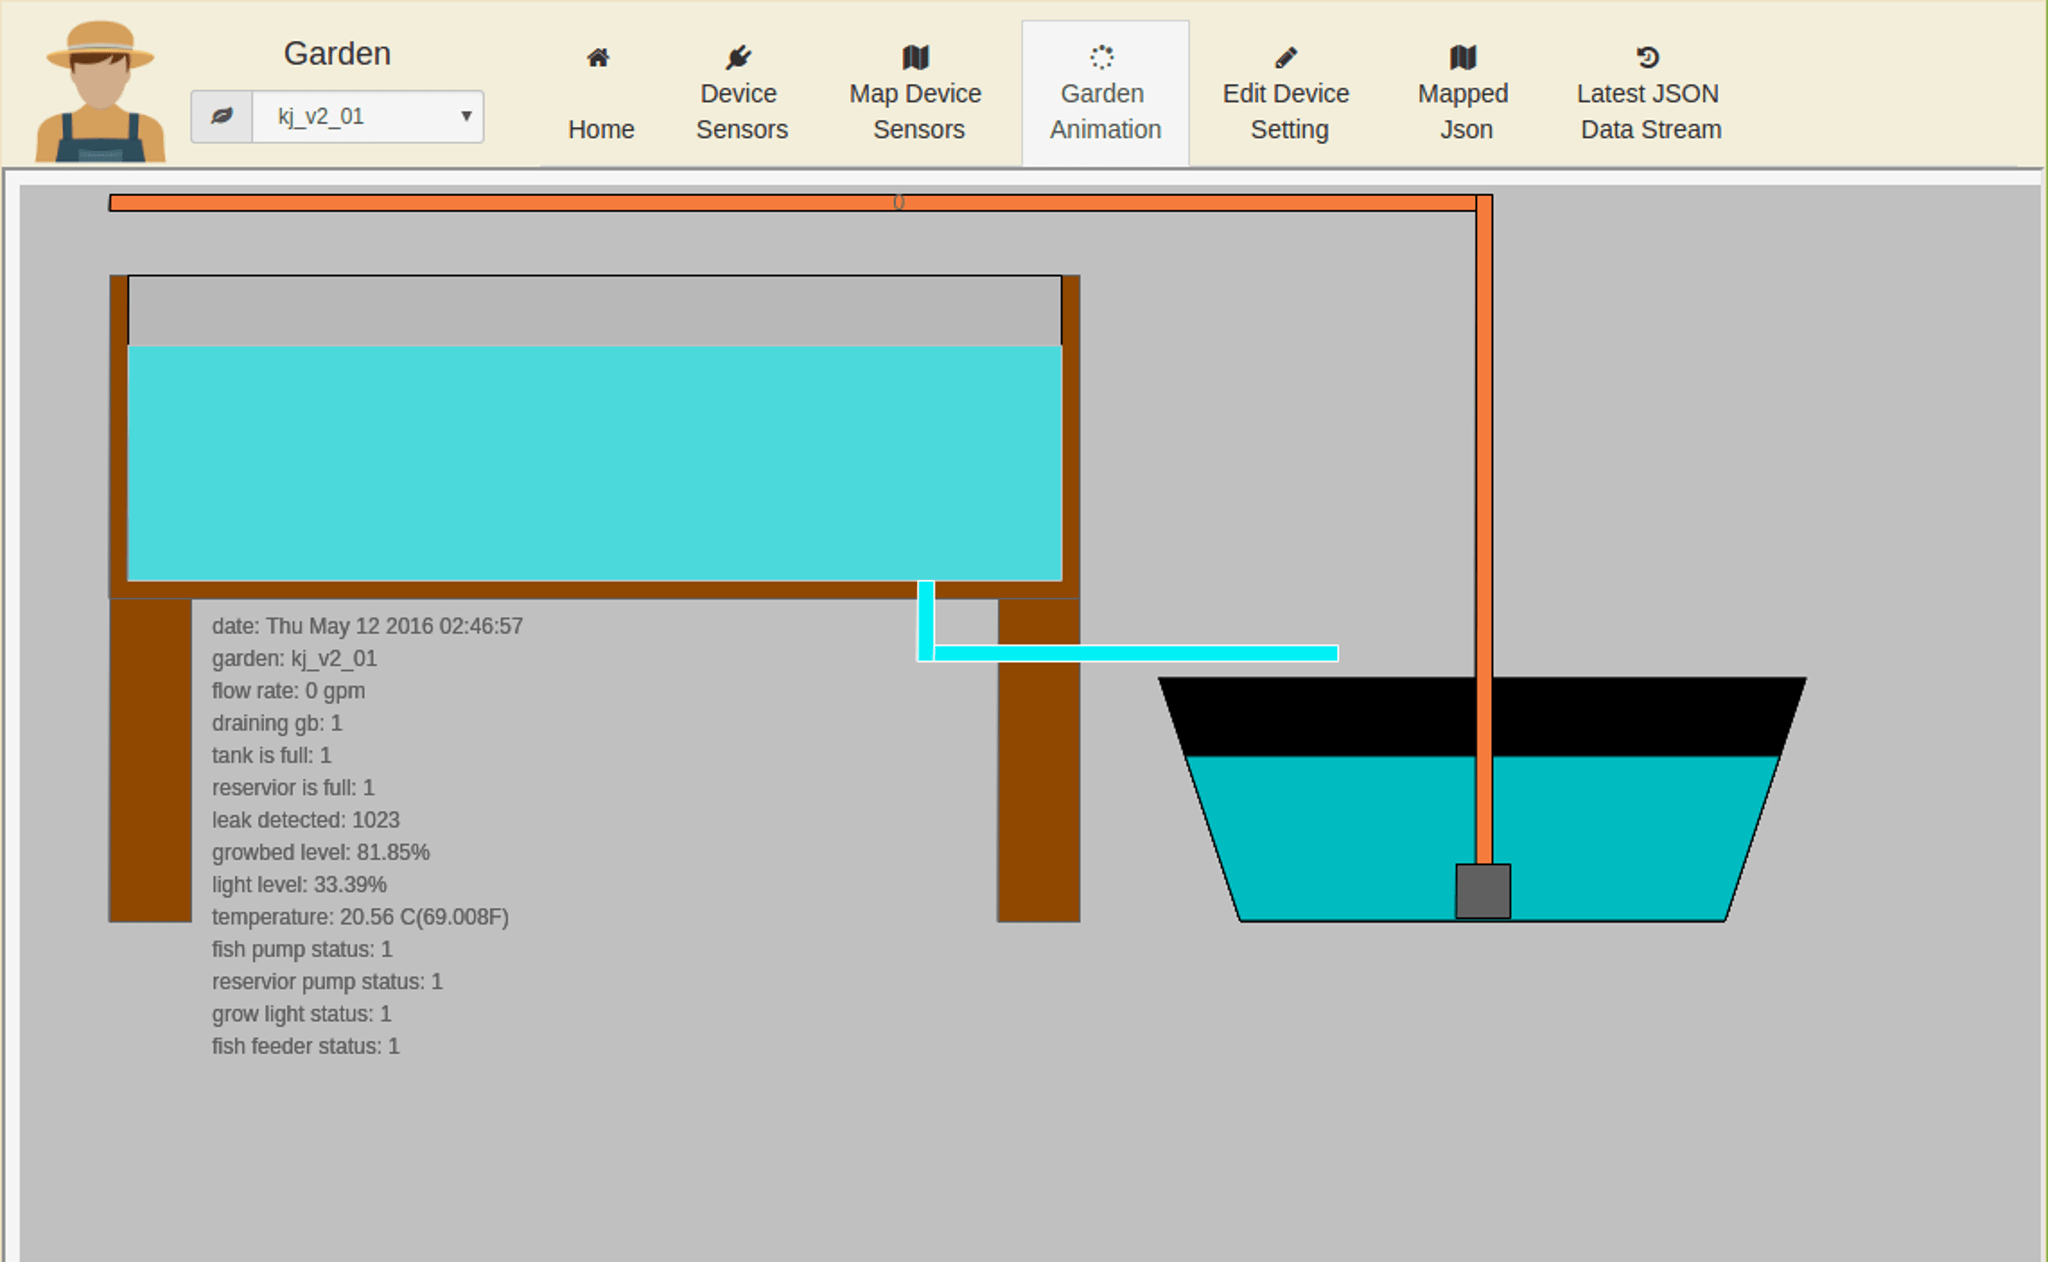 i just noticed that was the indoor irrigation system at many labs if an aquaponic garden it can be further visualized as an animation